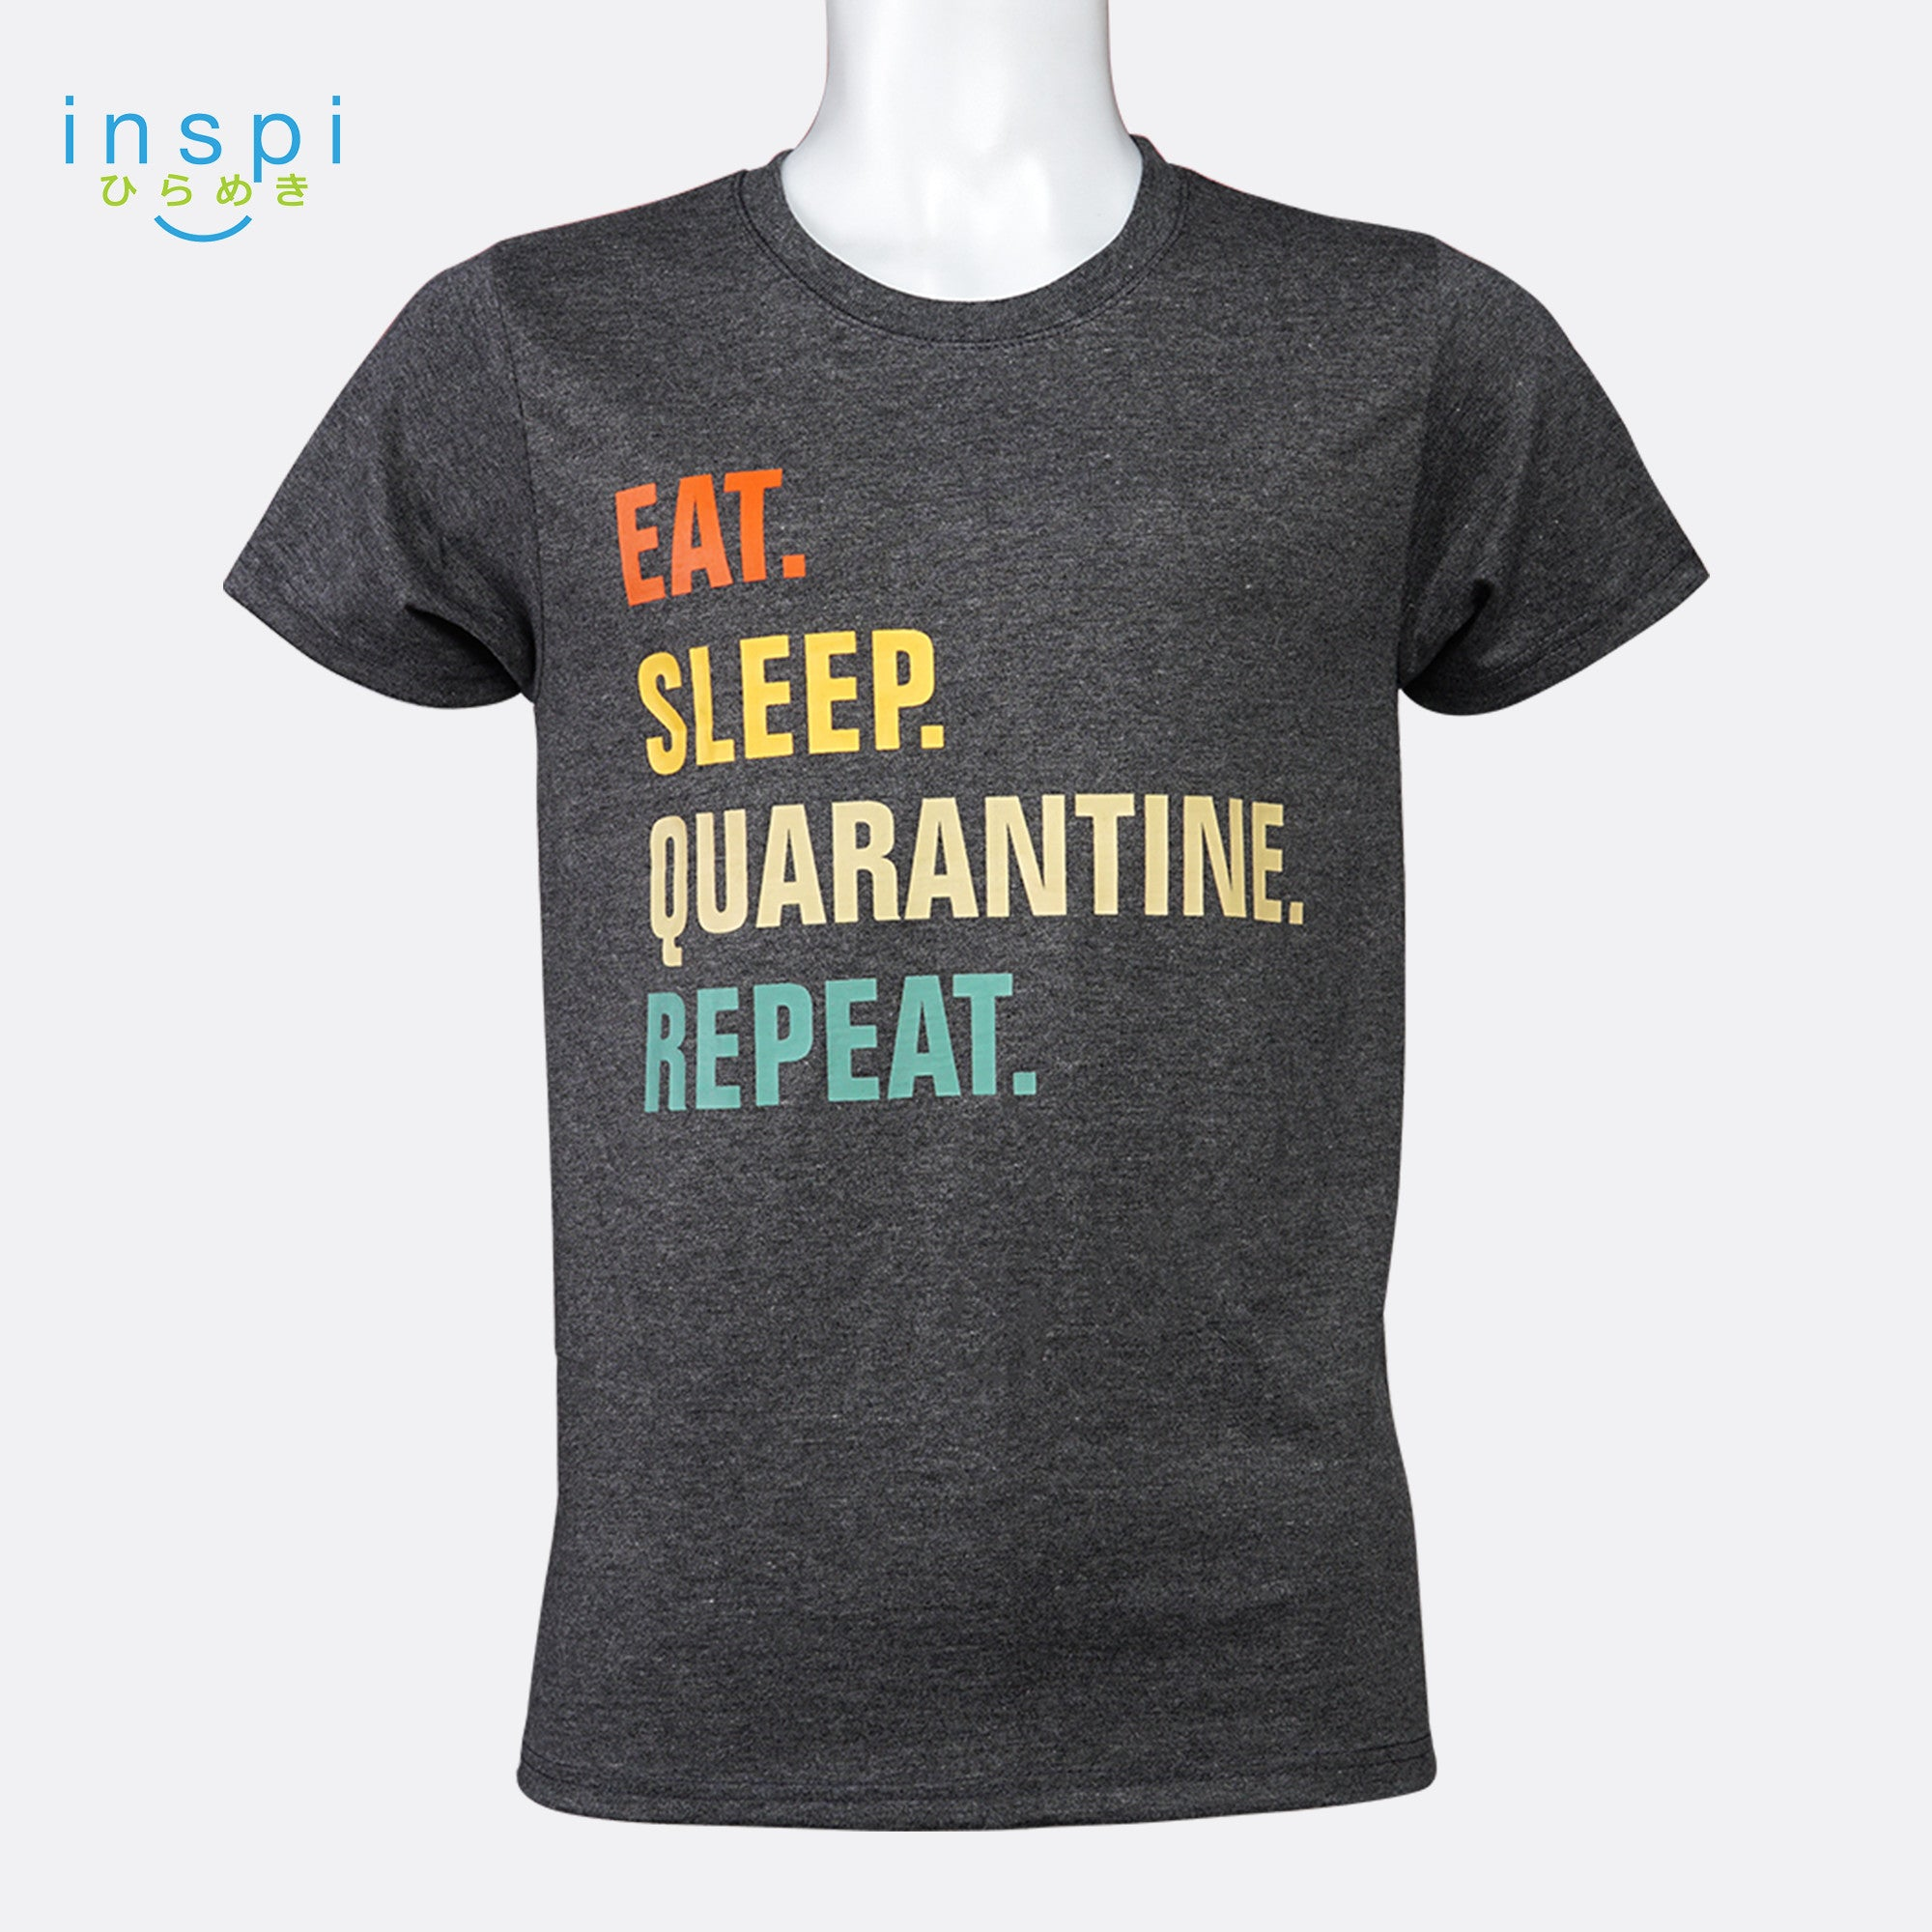 INSPI shirt Eat Sleep Quarantine Tshirt in Black